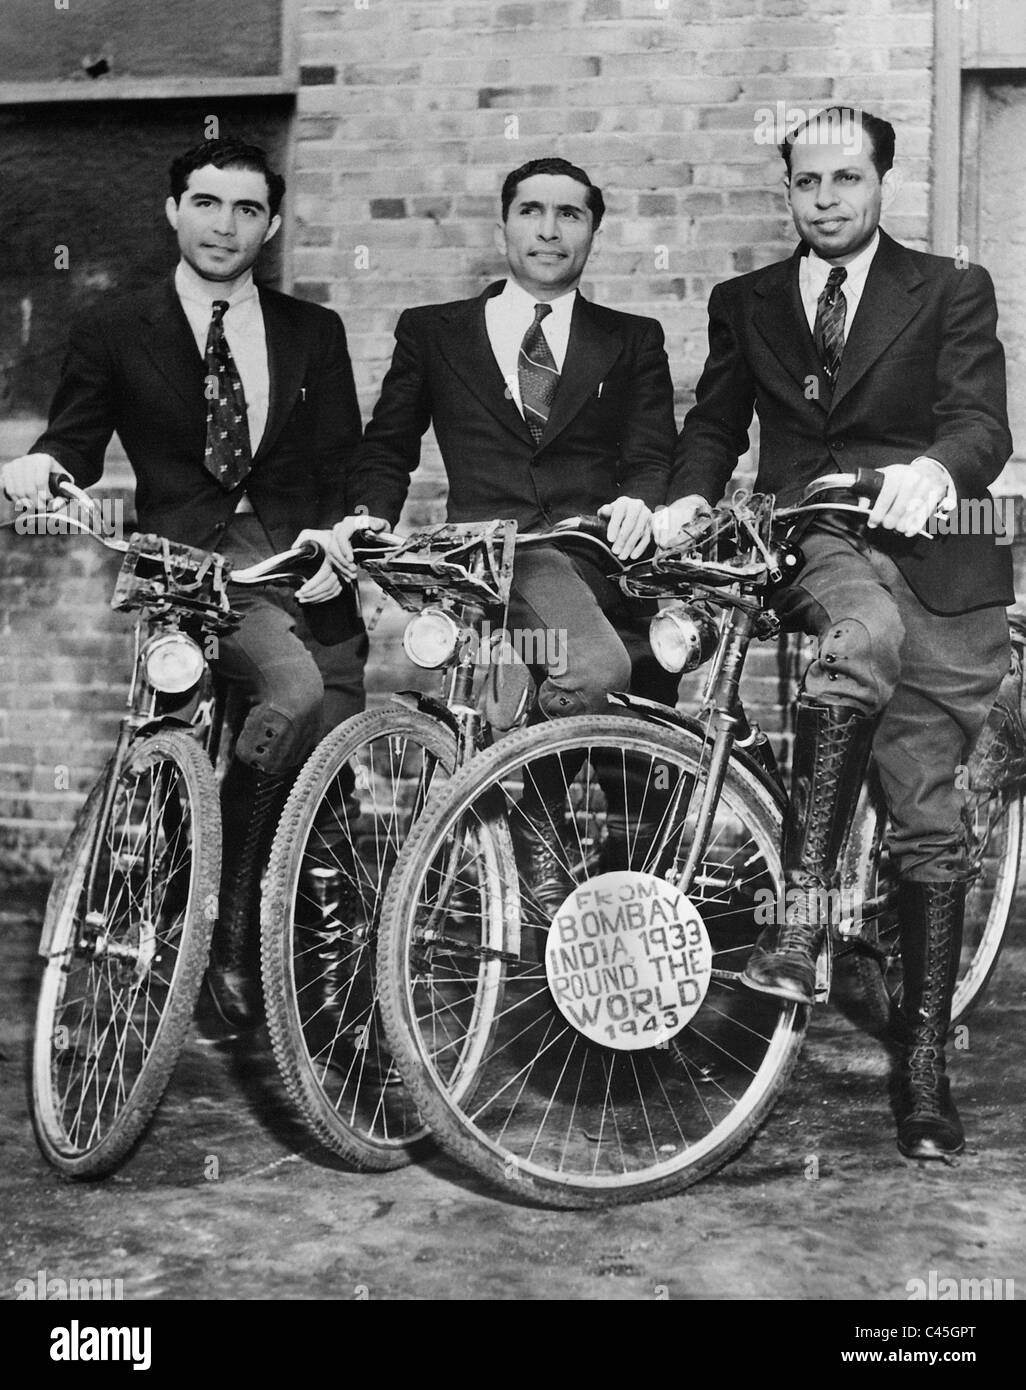 Indians on a world trip by bicycle, 1939 - Stock Image